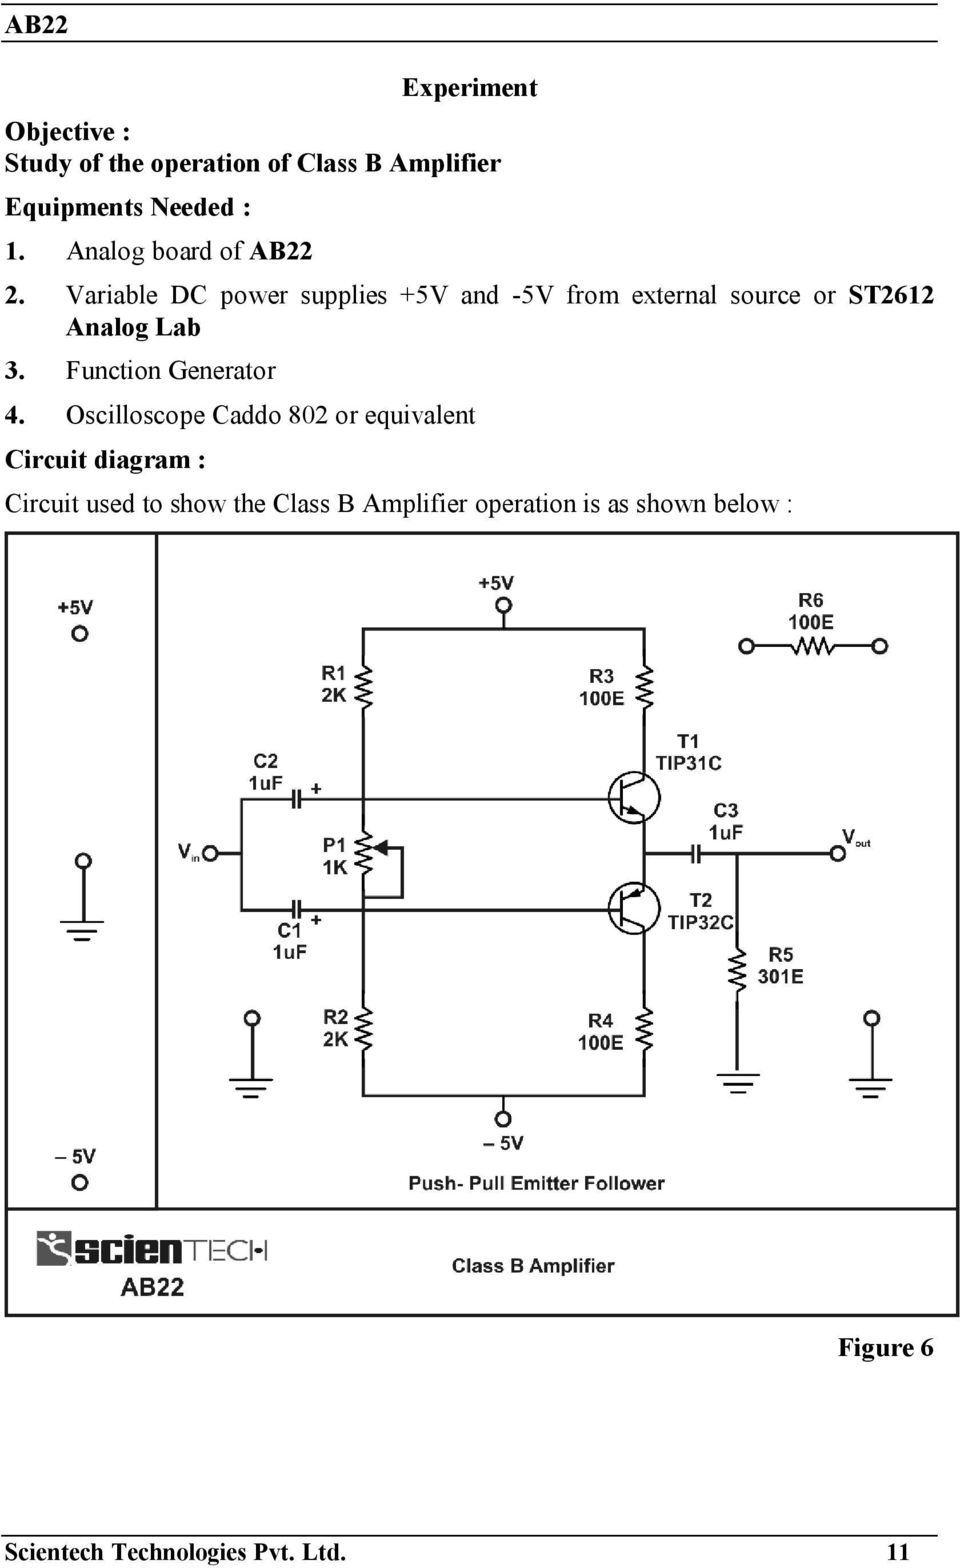 medium resolution of variable dc power supplies 5v and 5v from external source or st2612 analog lab